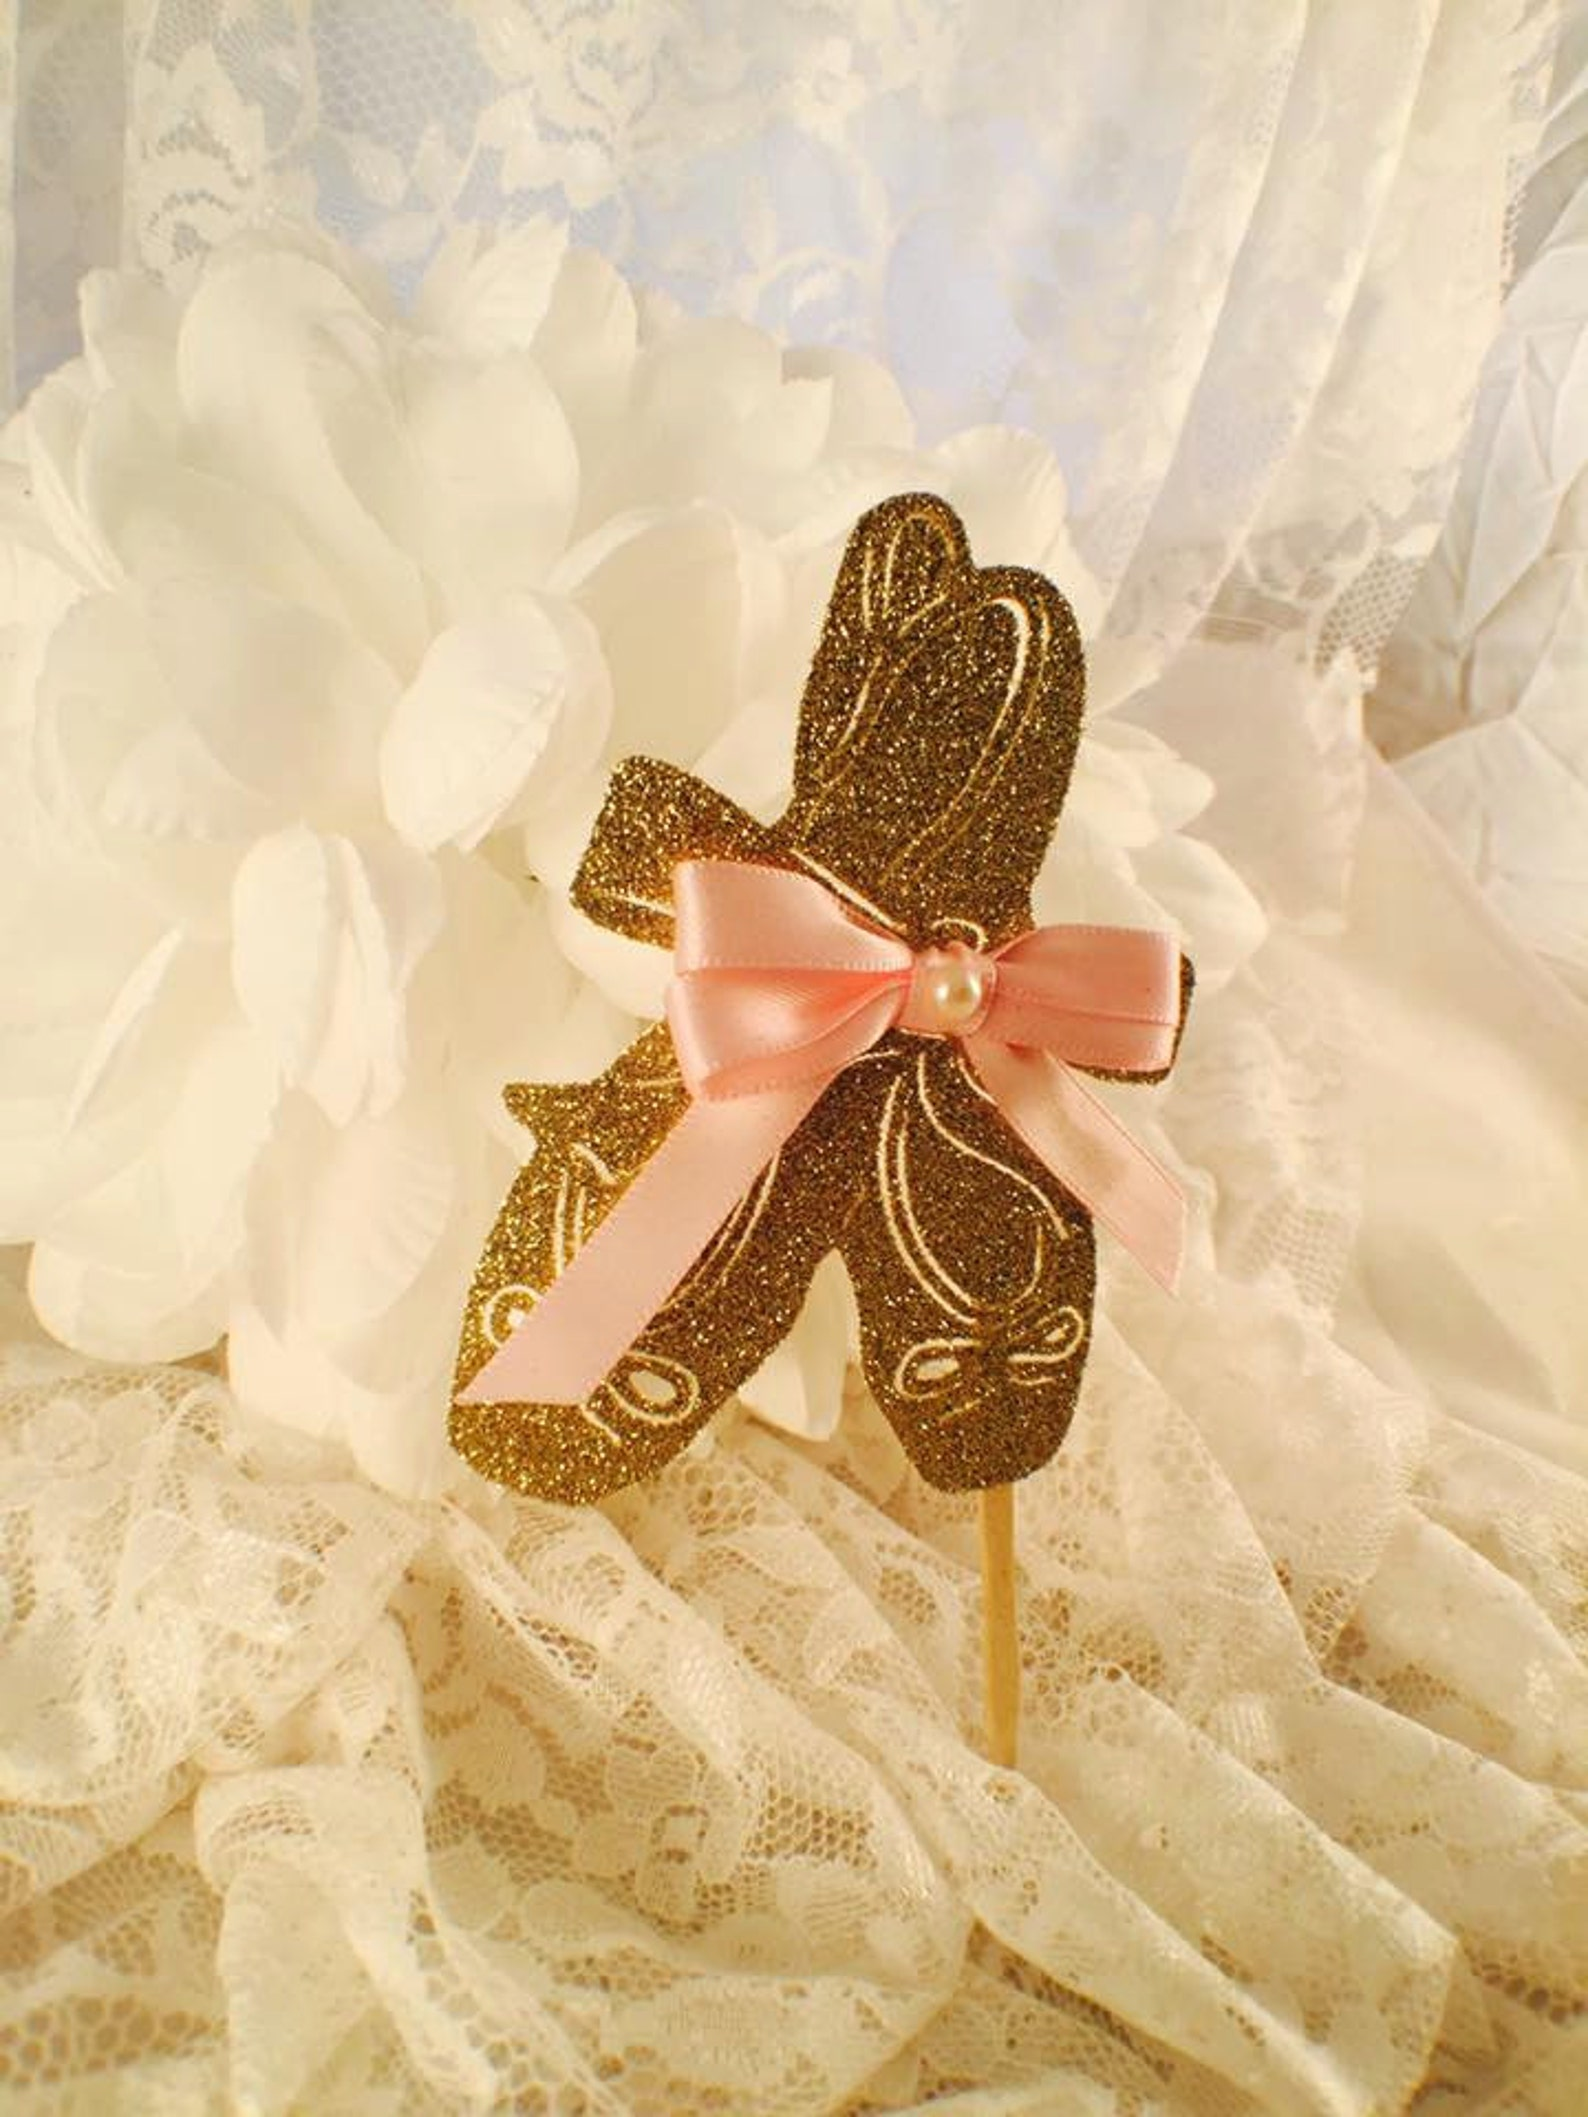 ballerina party - cupcake toppers - ballet party - ballerina slippers shoes - ballet slippers shoes - ballerina part decorations